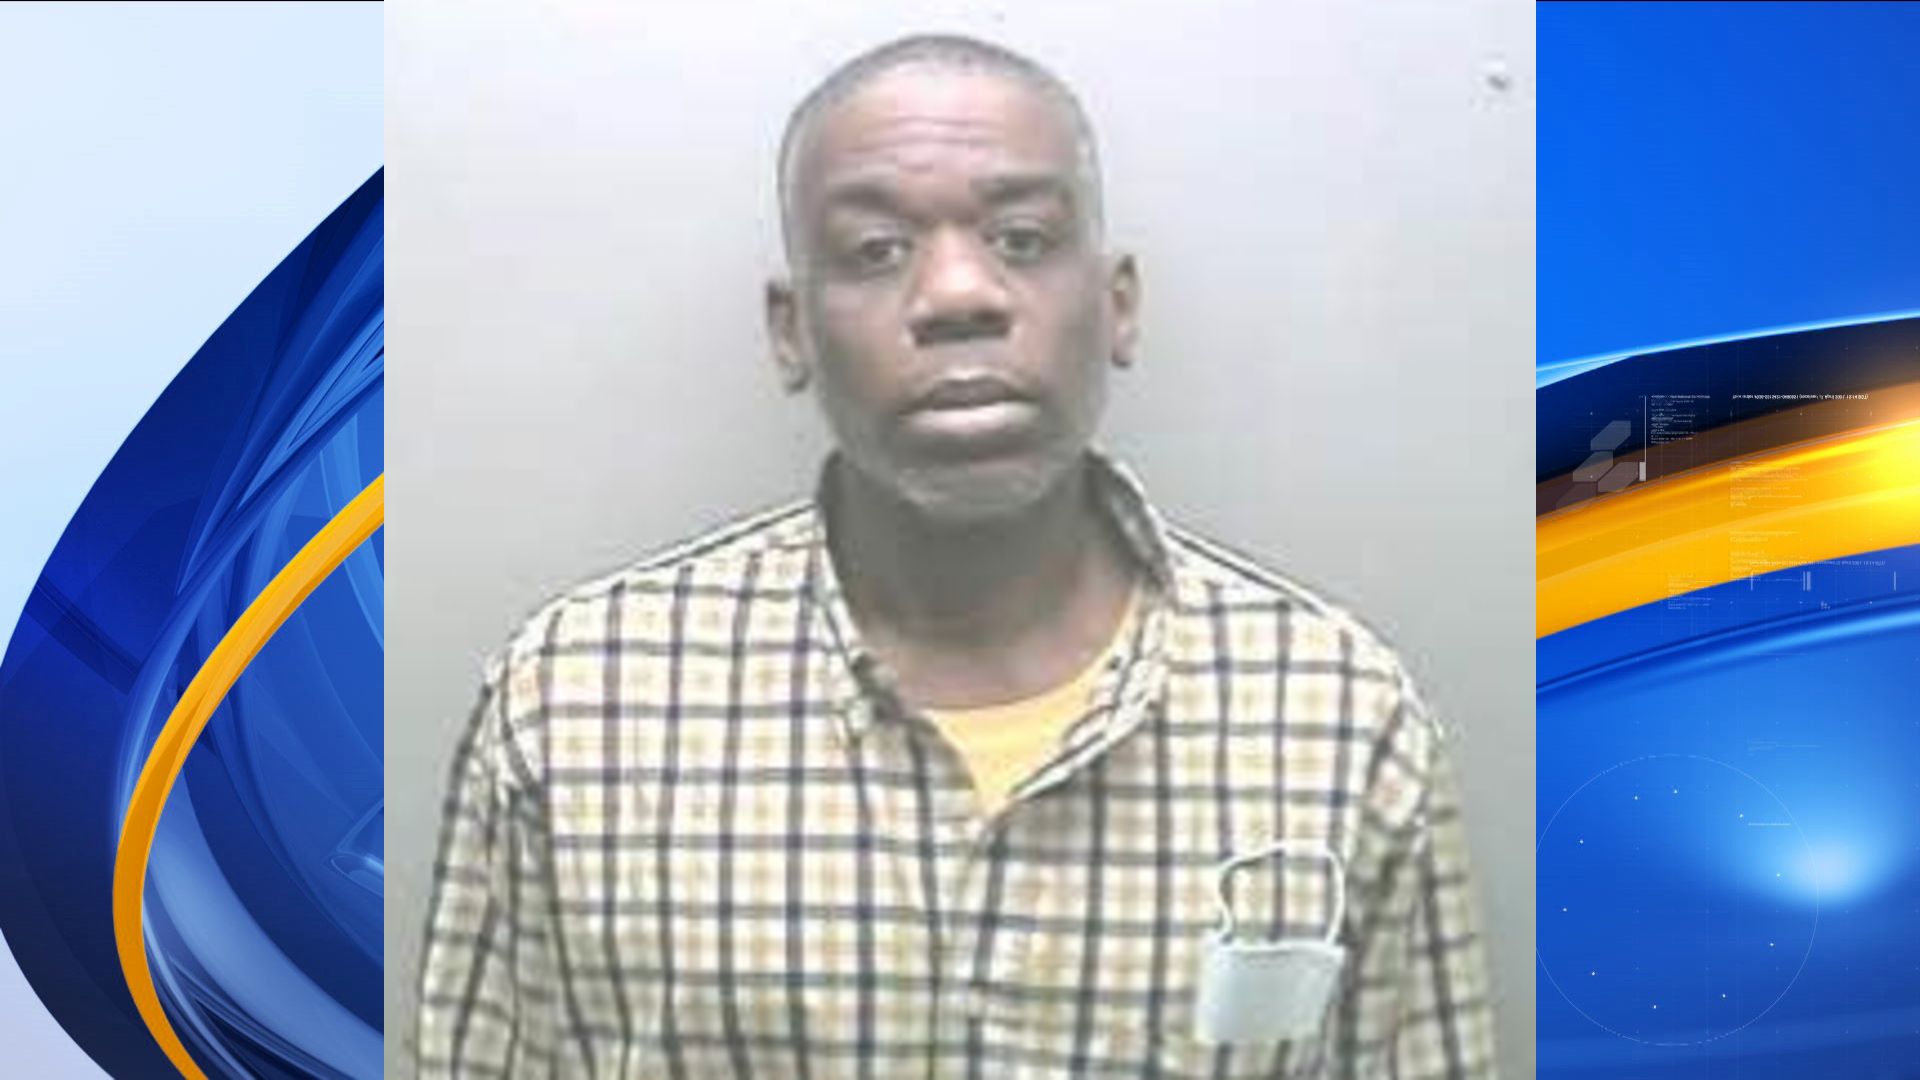 Nekyle N. Chaney faces up to 20 years in prison and a maximum fine of $250,000 if convicted.